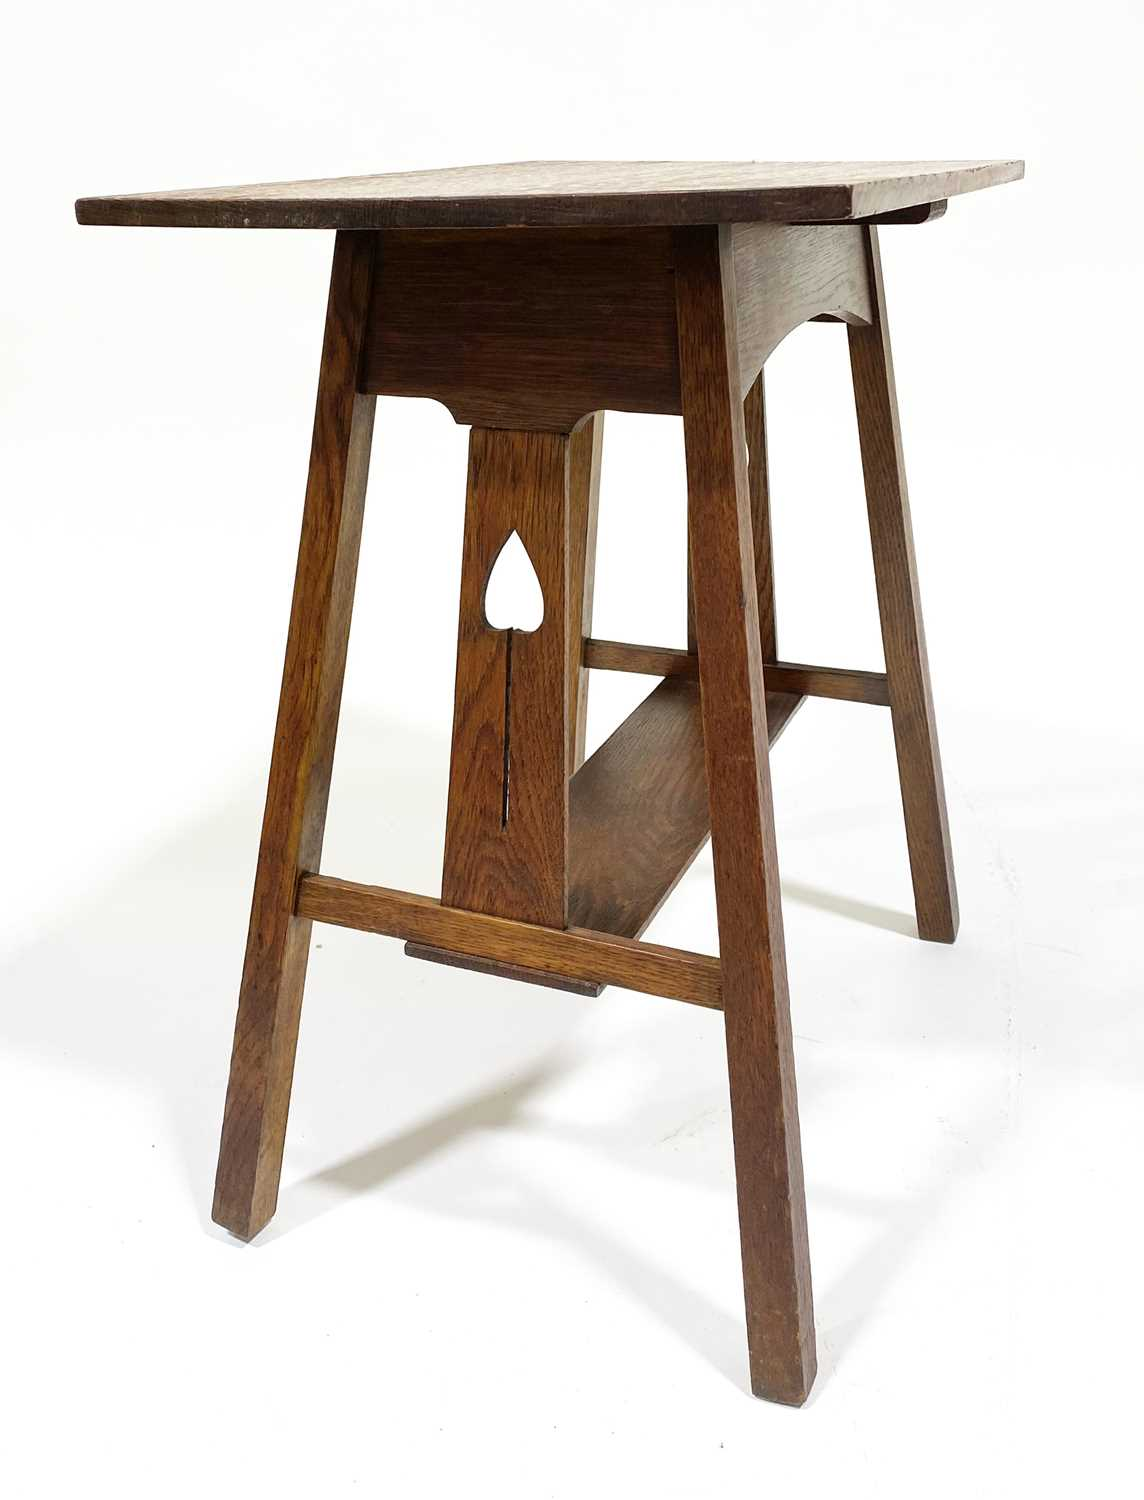 Lot 541-An Arts & Crafts oak side table, possibly by E A Taylor for Wylie & Lochhead